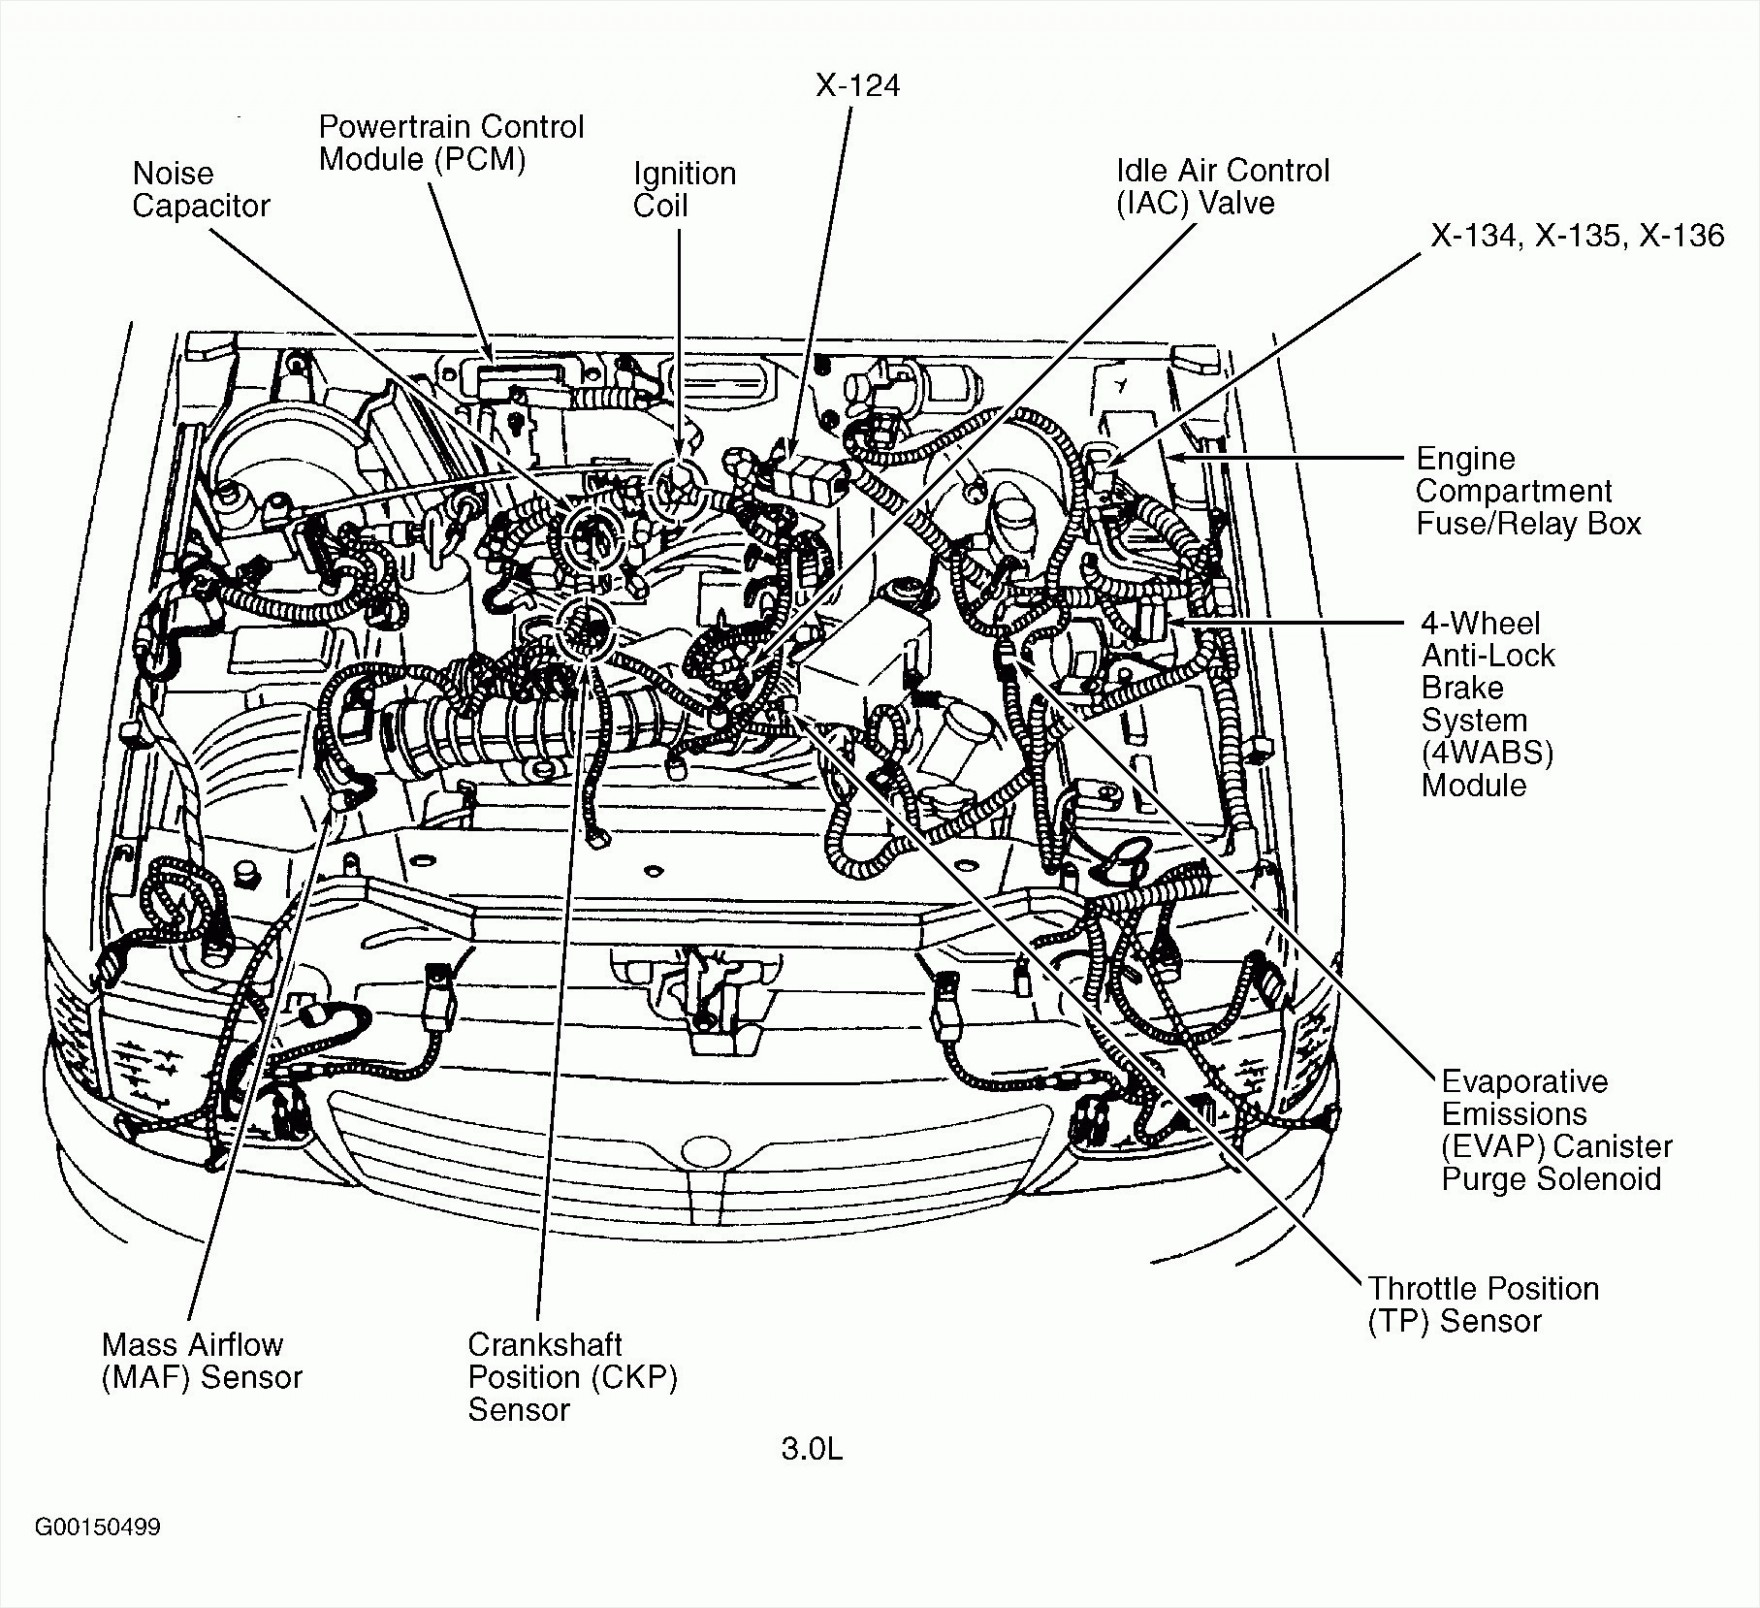 5 5 5 Liter Gm Engine DiagramAnatomy Note